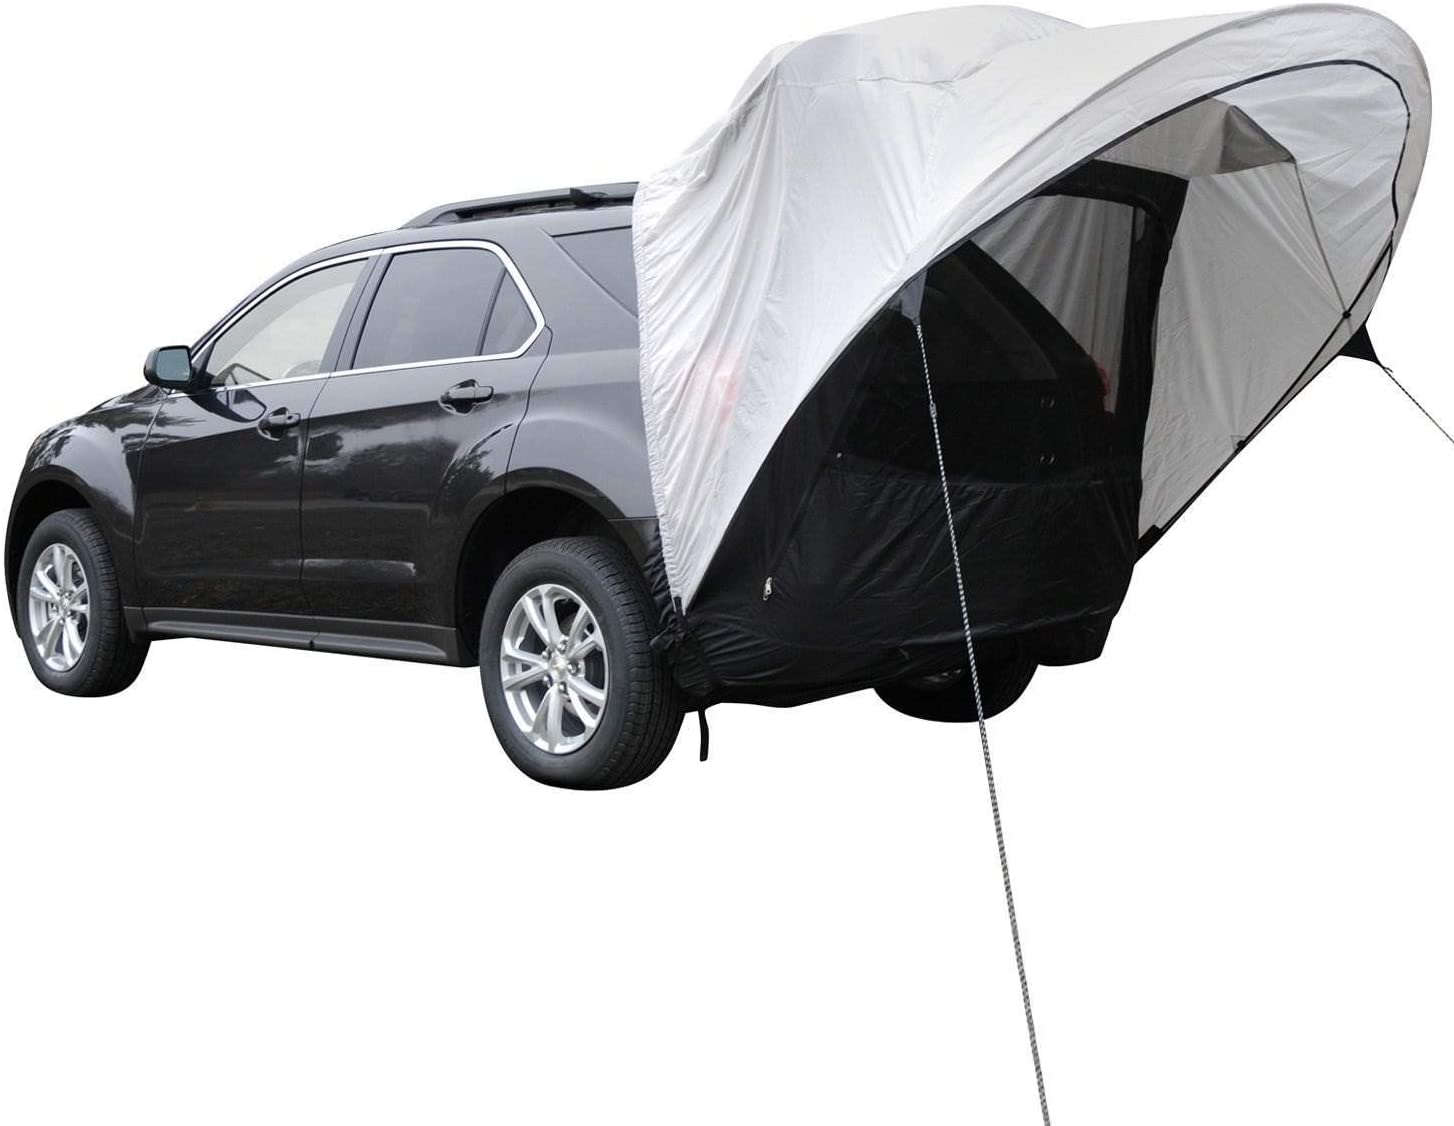 SPORTZ BY NAPIER for Full Size SUV Tailgate Shade Awning Tent